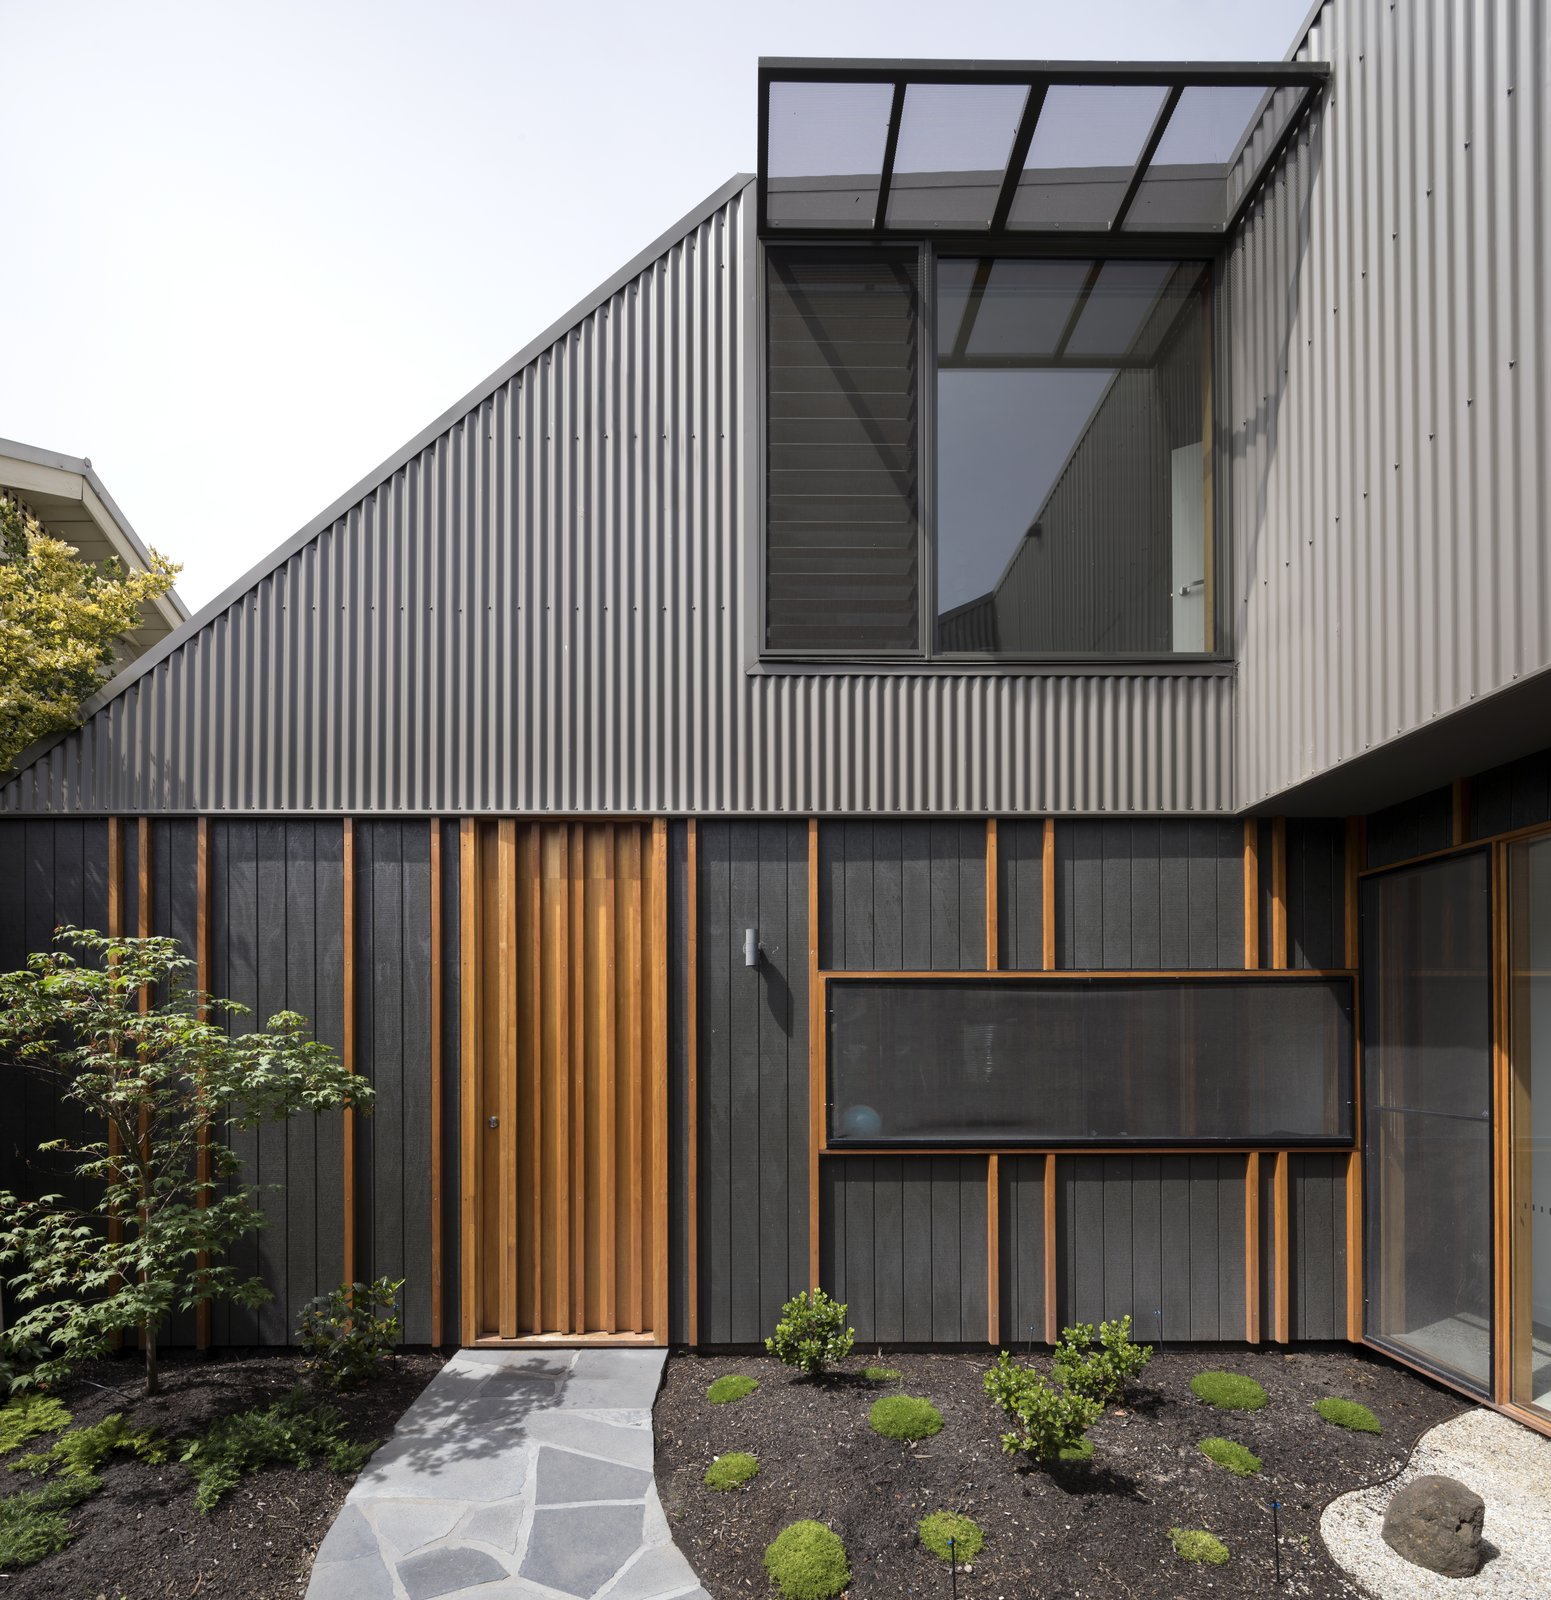 Exterior, Metal Roof Material, House Building Type, and Wood Siding Material Although the property looks like a one-story home from the street, its second level is more noticeable from the enclosed courtyard. Timber battens were used to add interest to the exterior.  Photo 3 of 10 in A Family Home in Australia Features a Playful Version of the Classic Pitched Roof